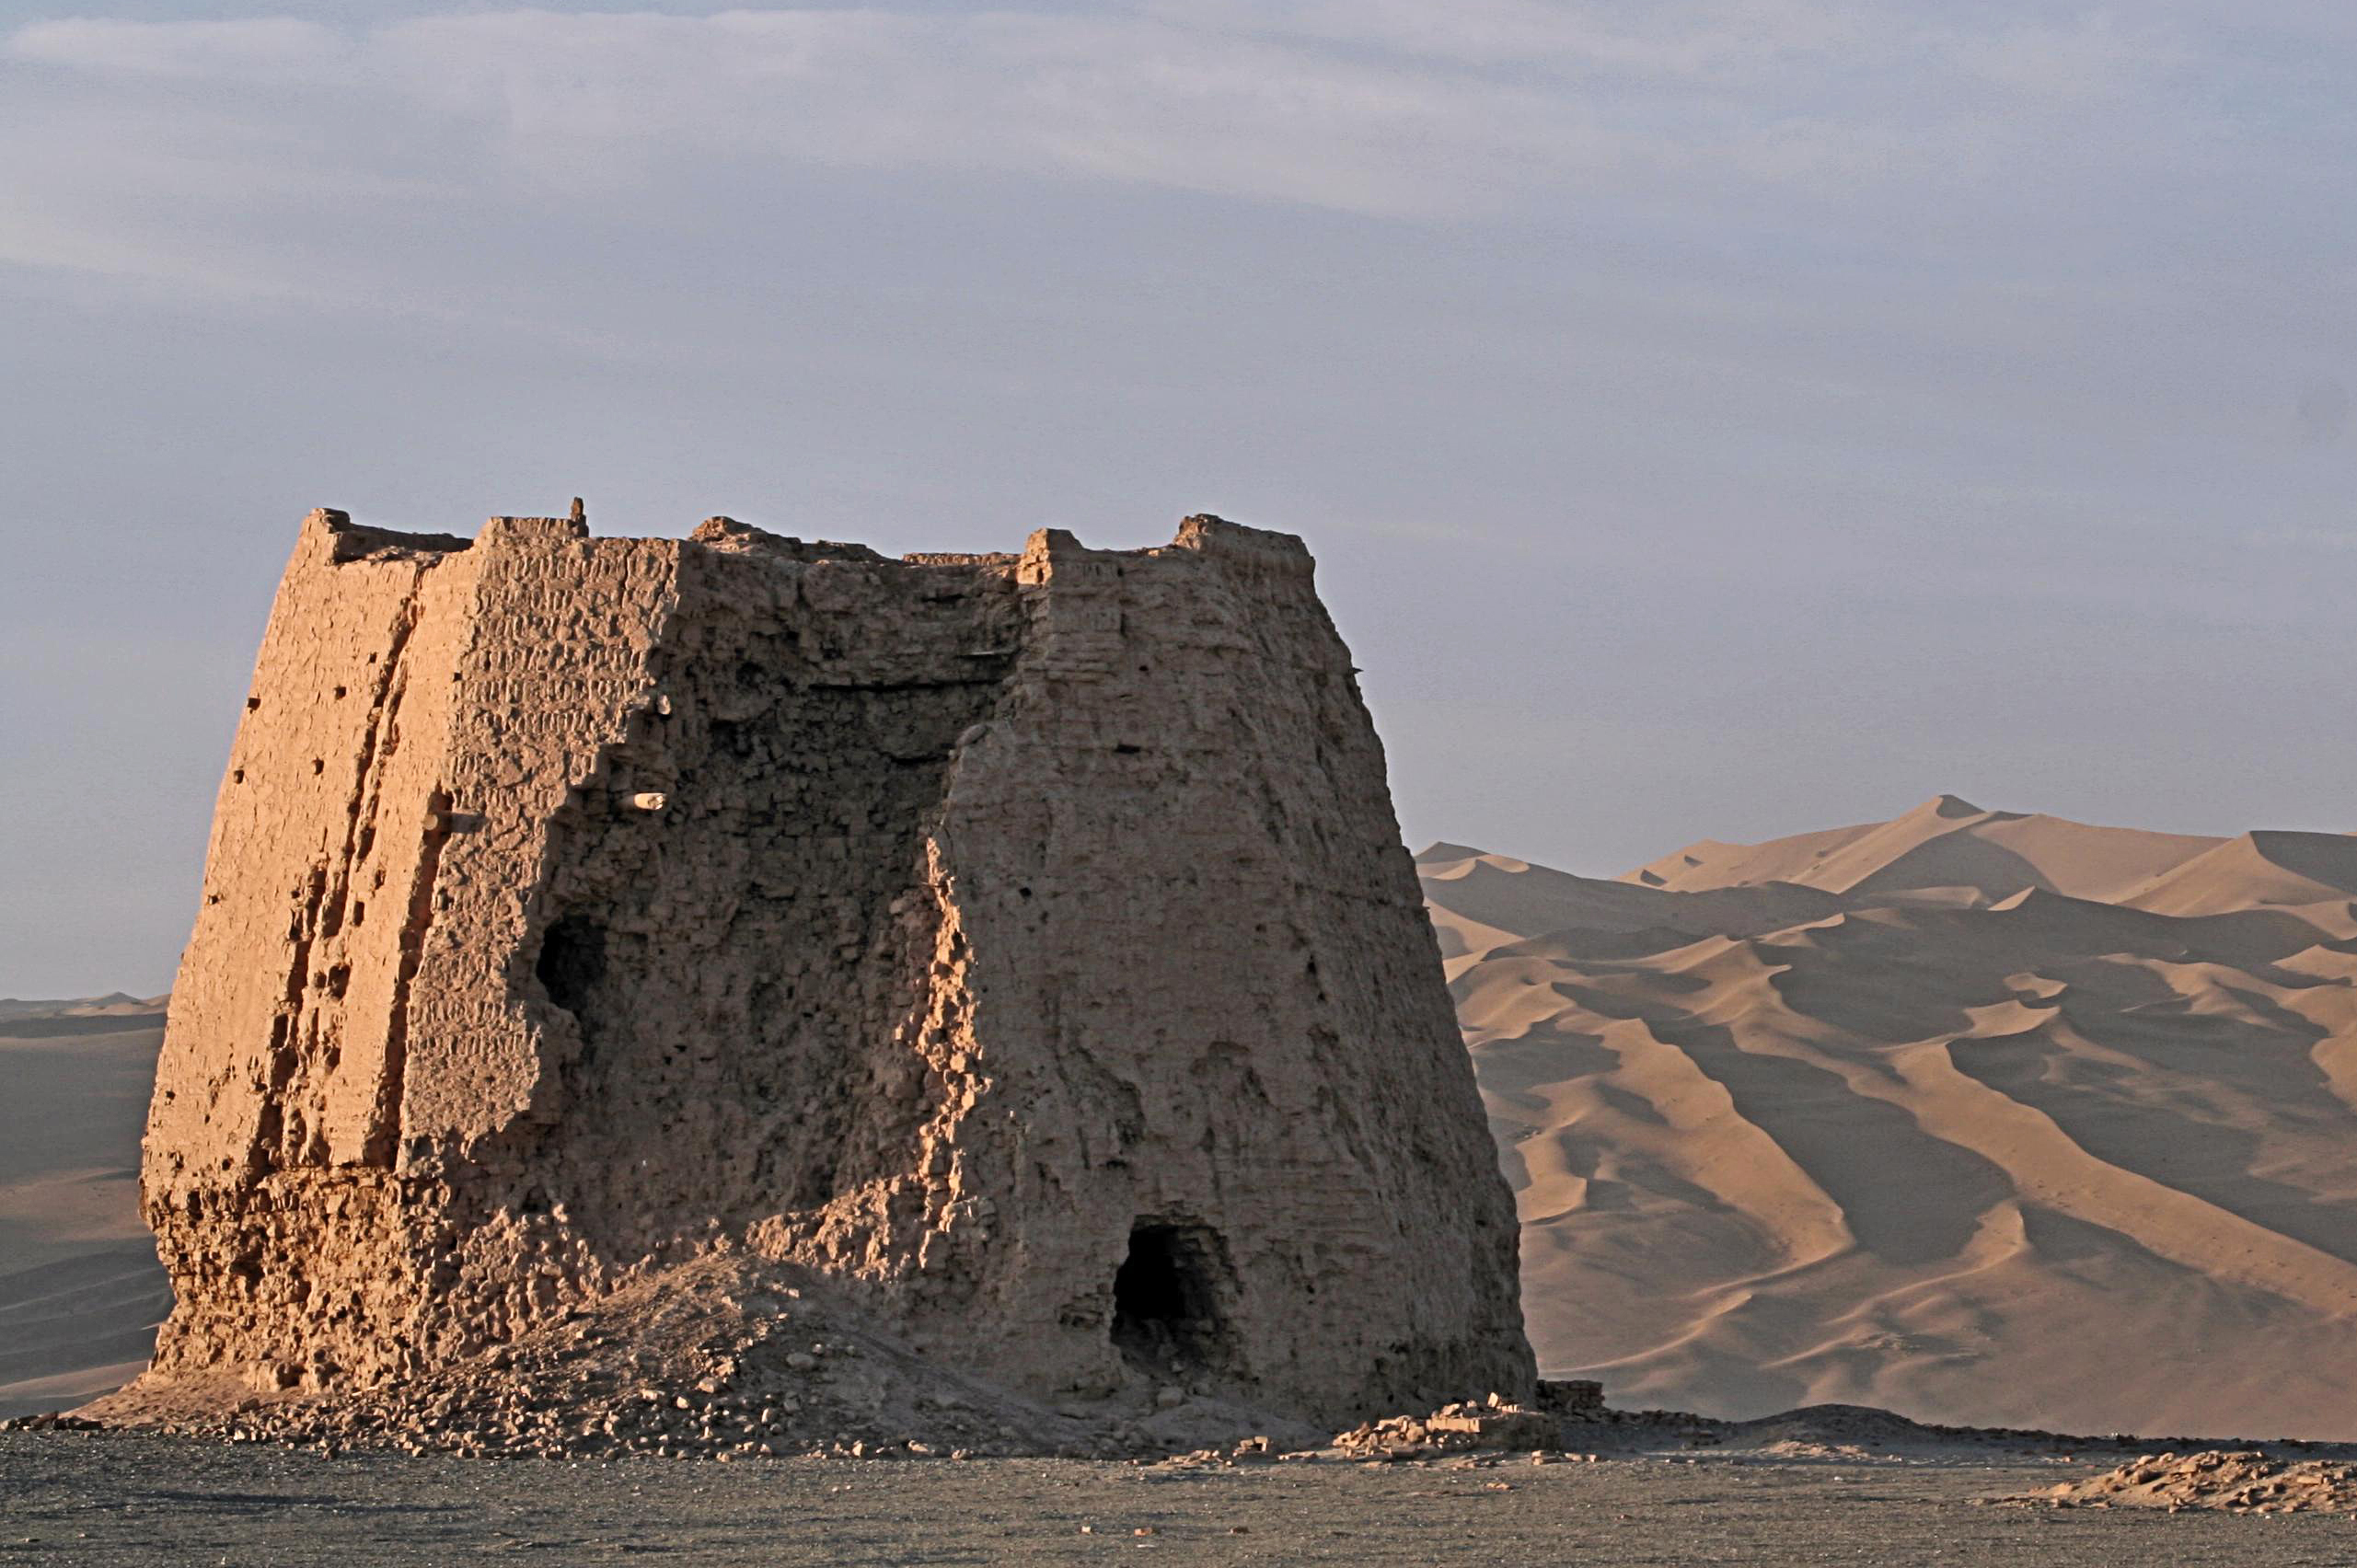 https://upload.wikimedia.org/wikipedia/commons/4/43/Summer_Vacation_2007%2C_263%2C_Watchtower_In_The_Morning_Light%2C_Dunhuang%2C_Gansu_Province.jpg